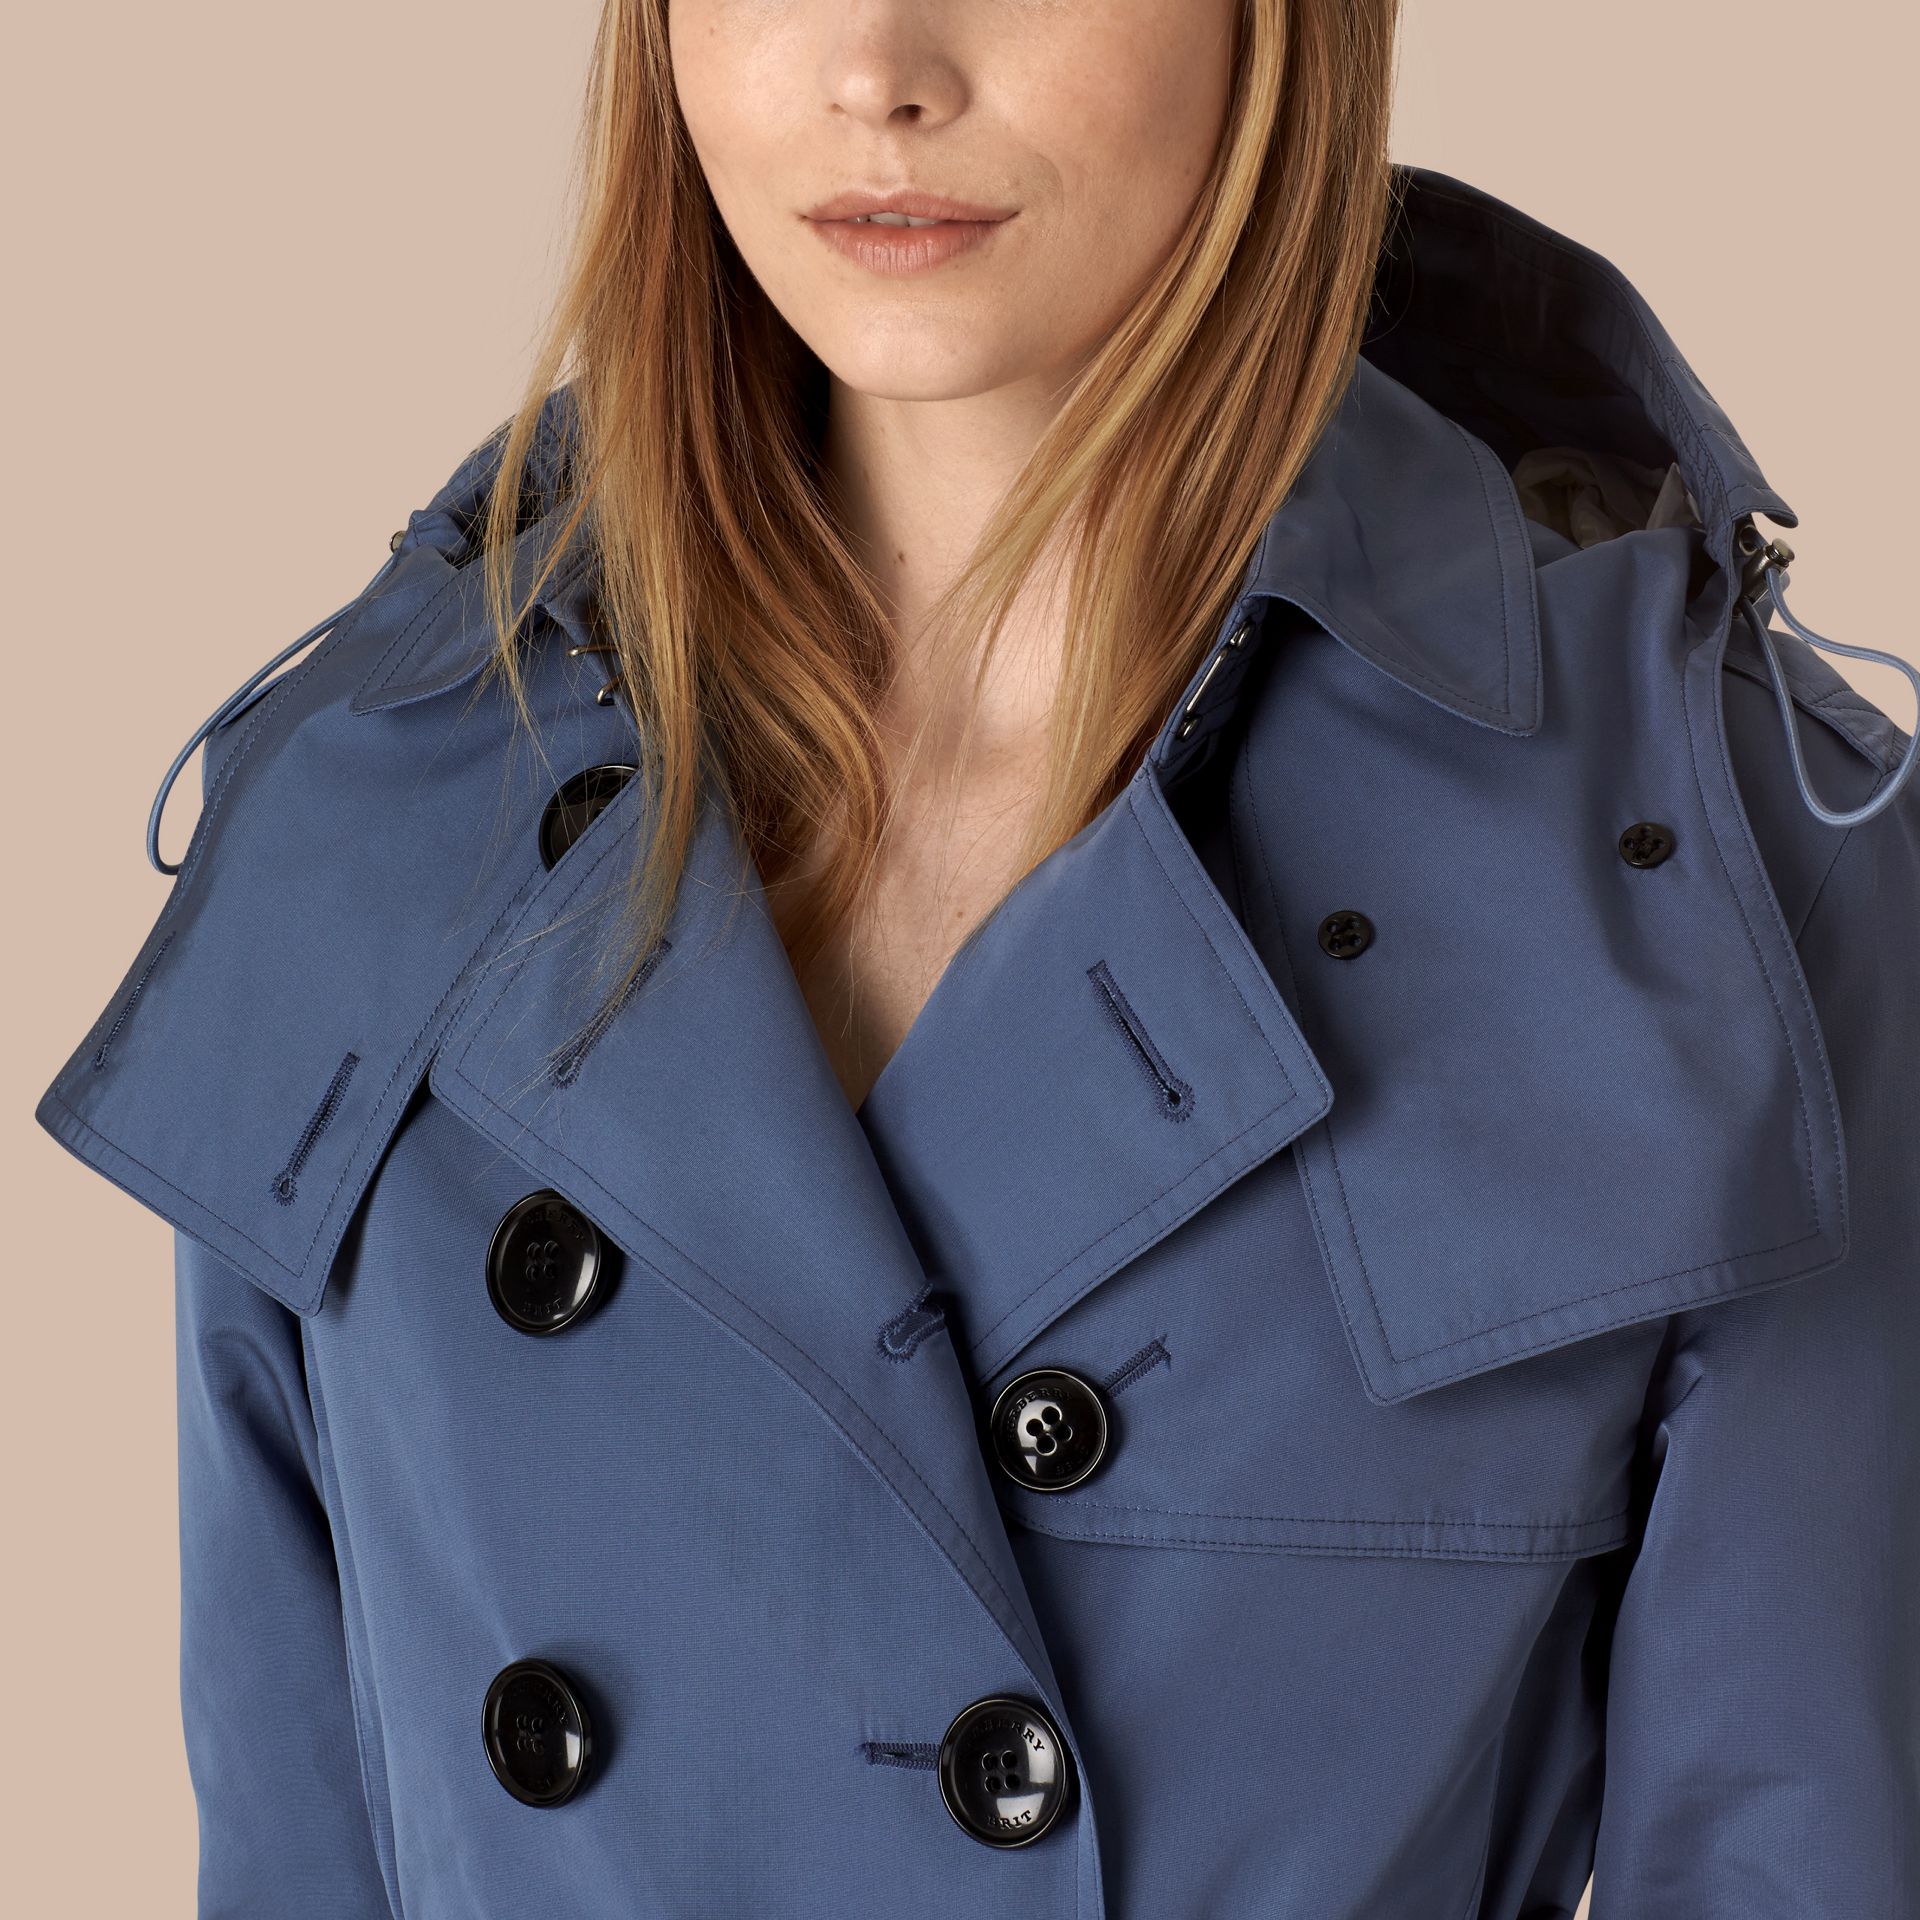 Pale lupin blue Showerproof Trench Coat with Detachable Hood Pale Lupin Blue - gallery image 4